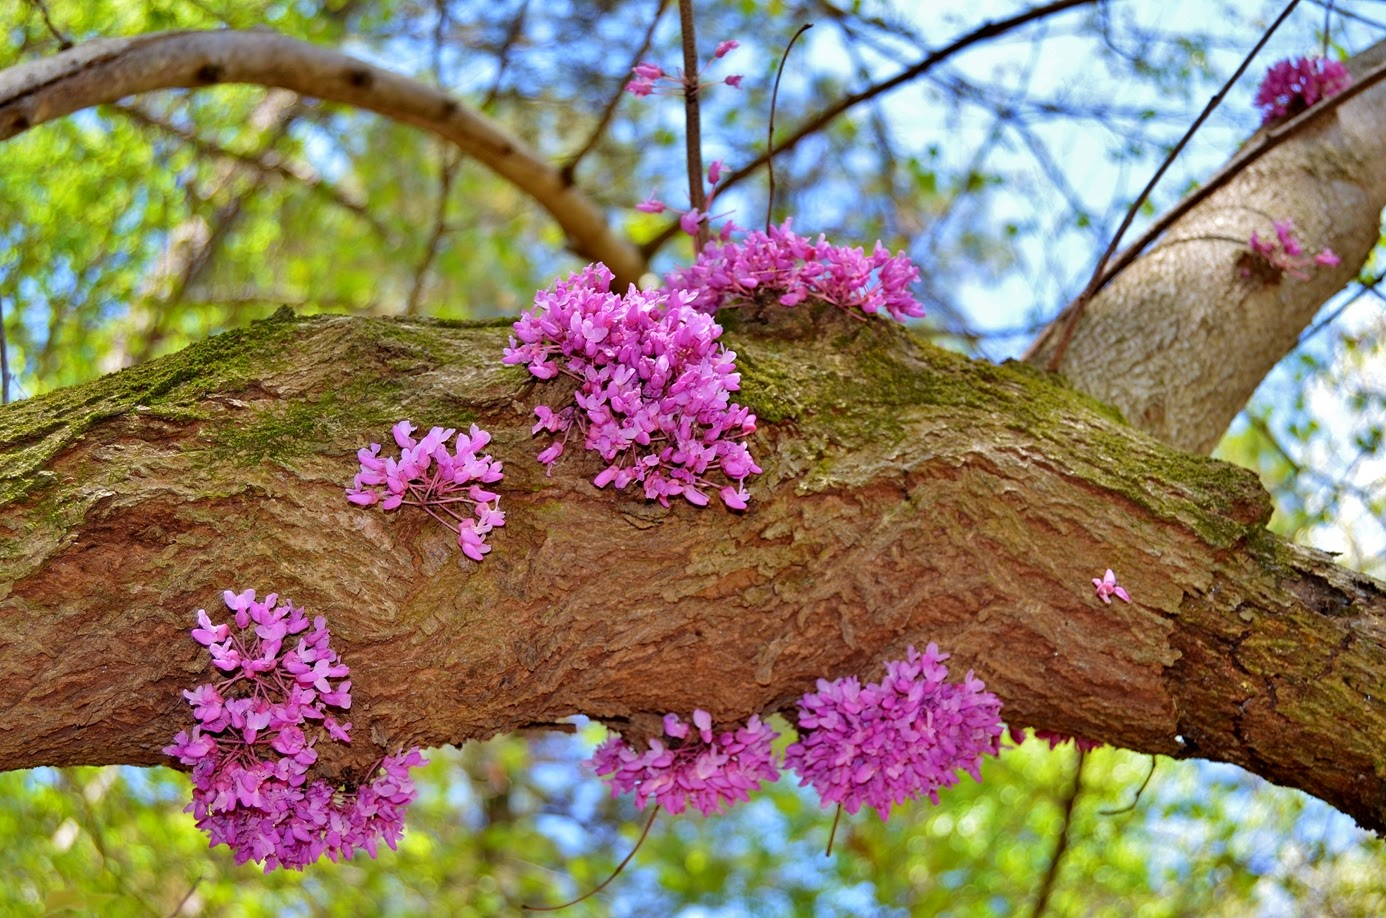 William b umstead state park take a hike - Flowers that grow on tree trunks ...